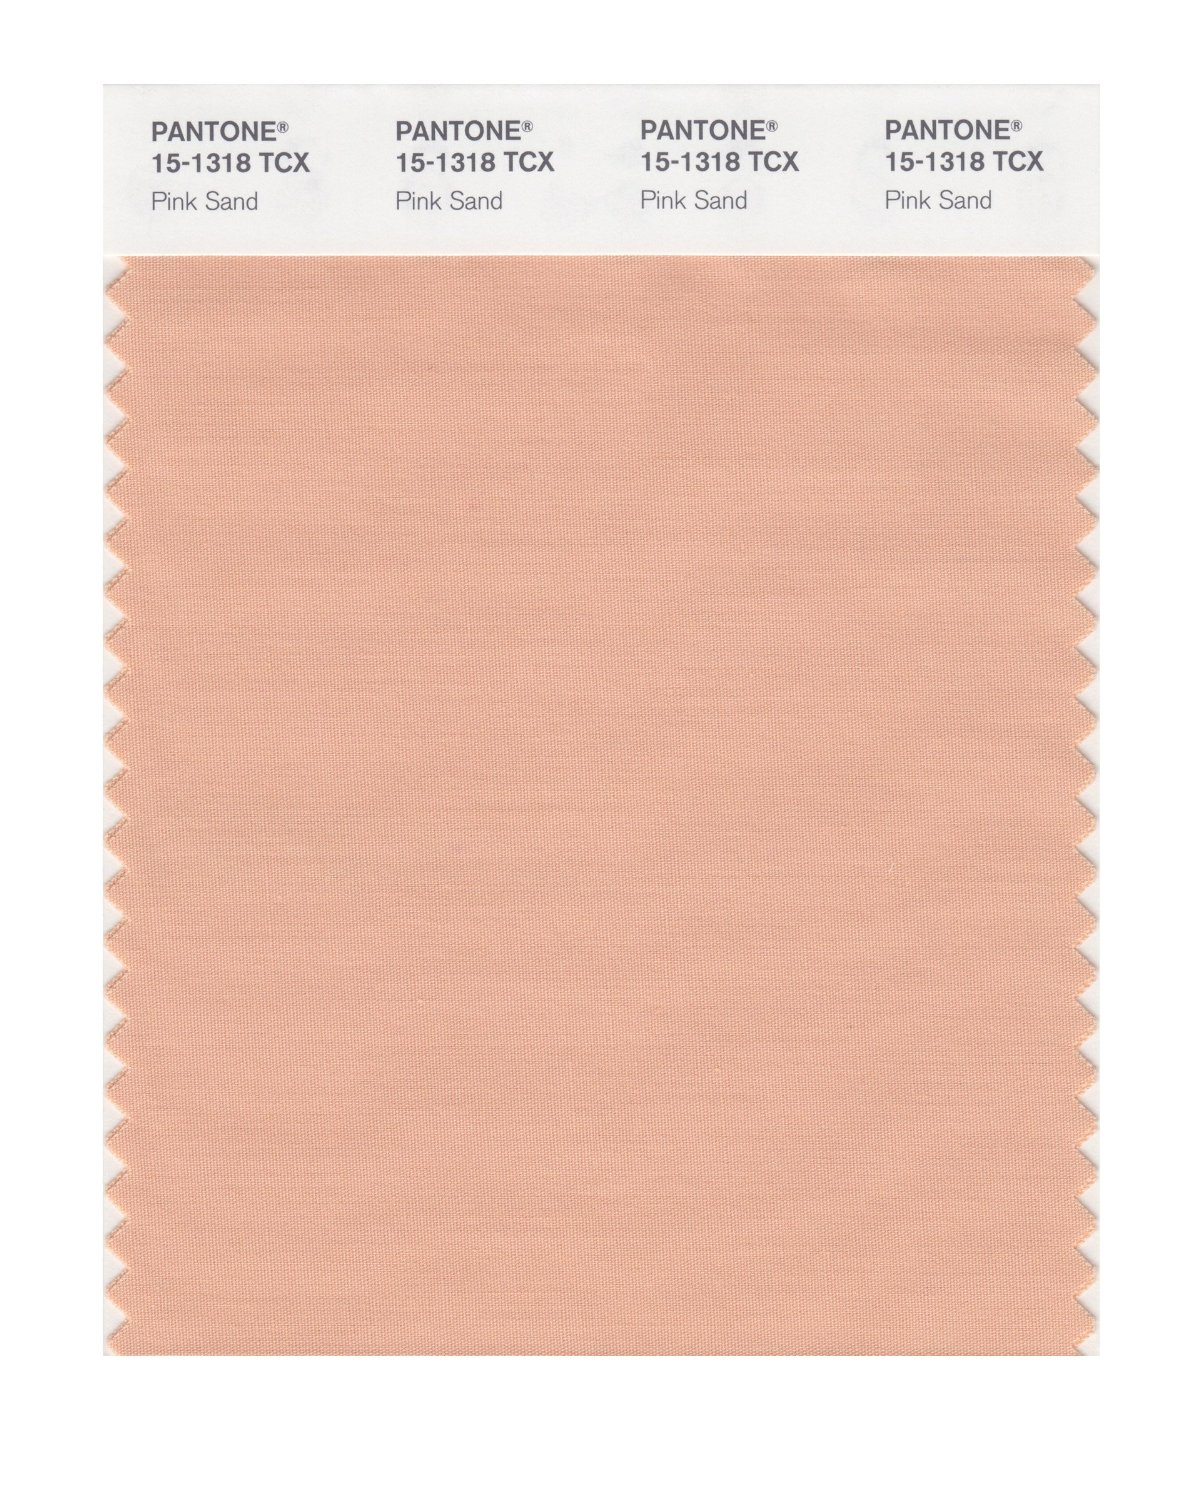 Pantone Smart Swatch 15-1318 Pink Sand